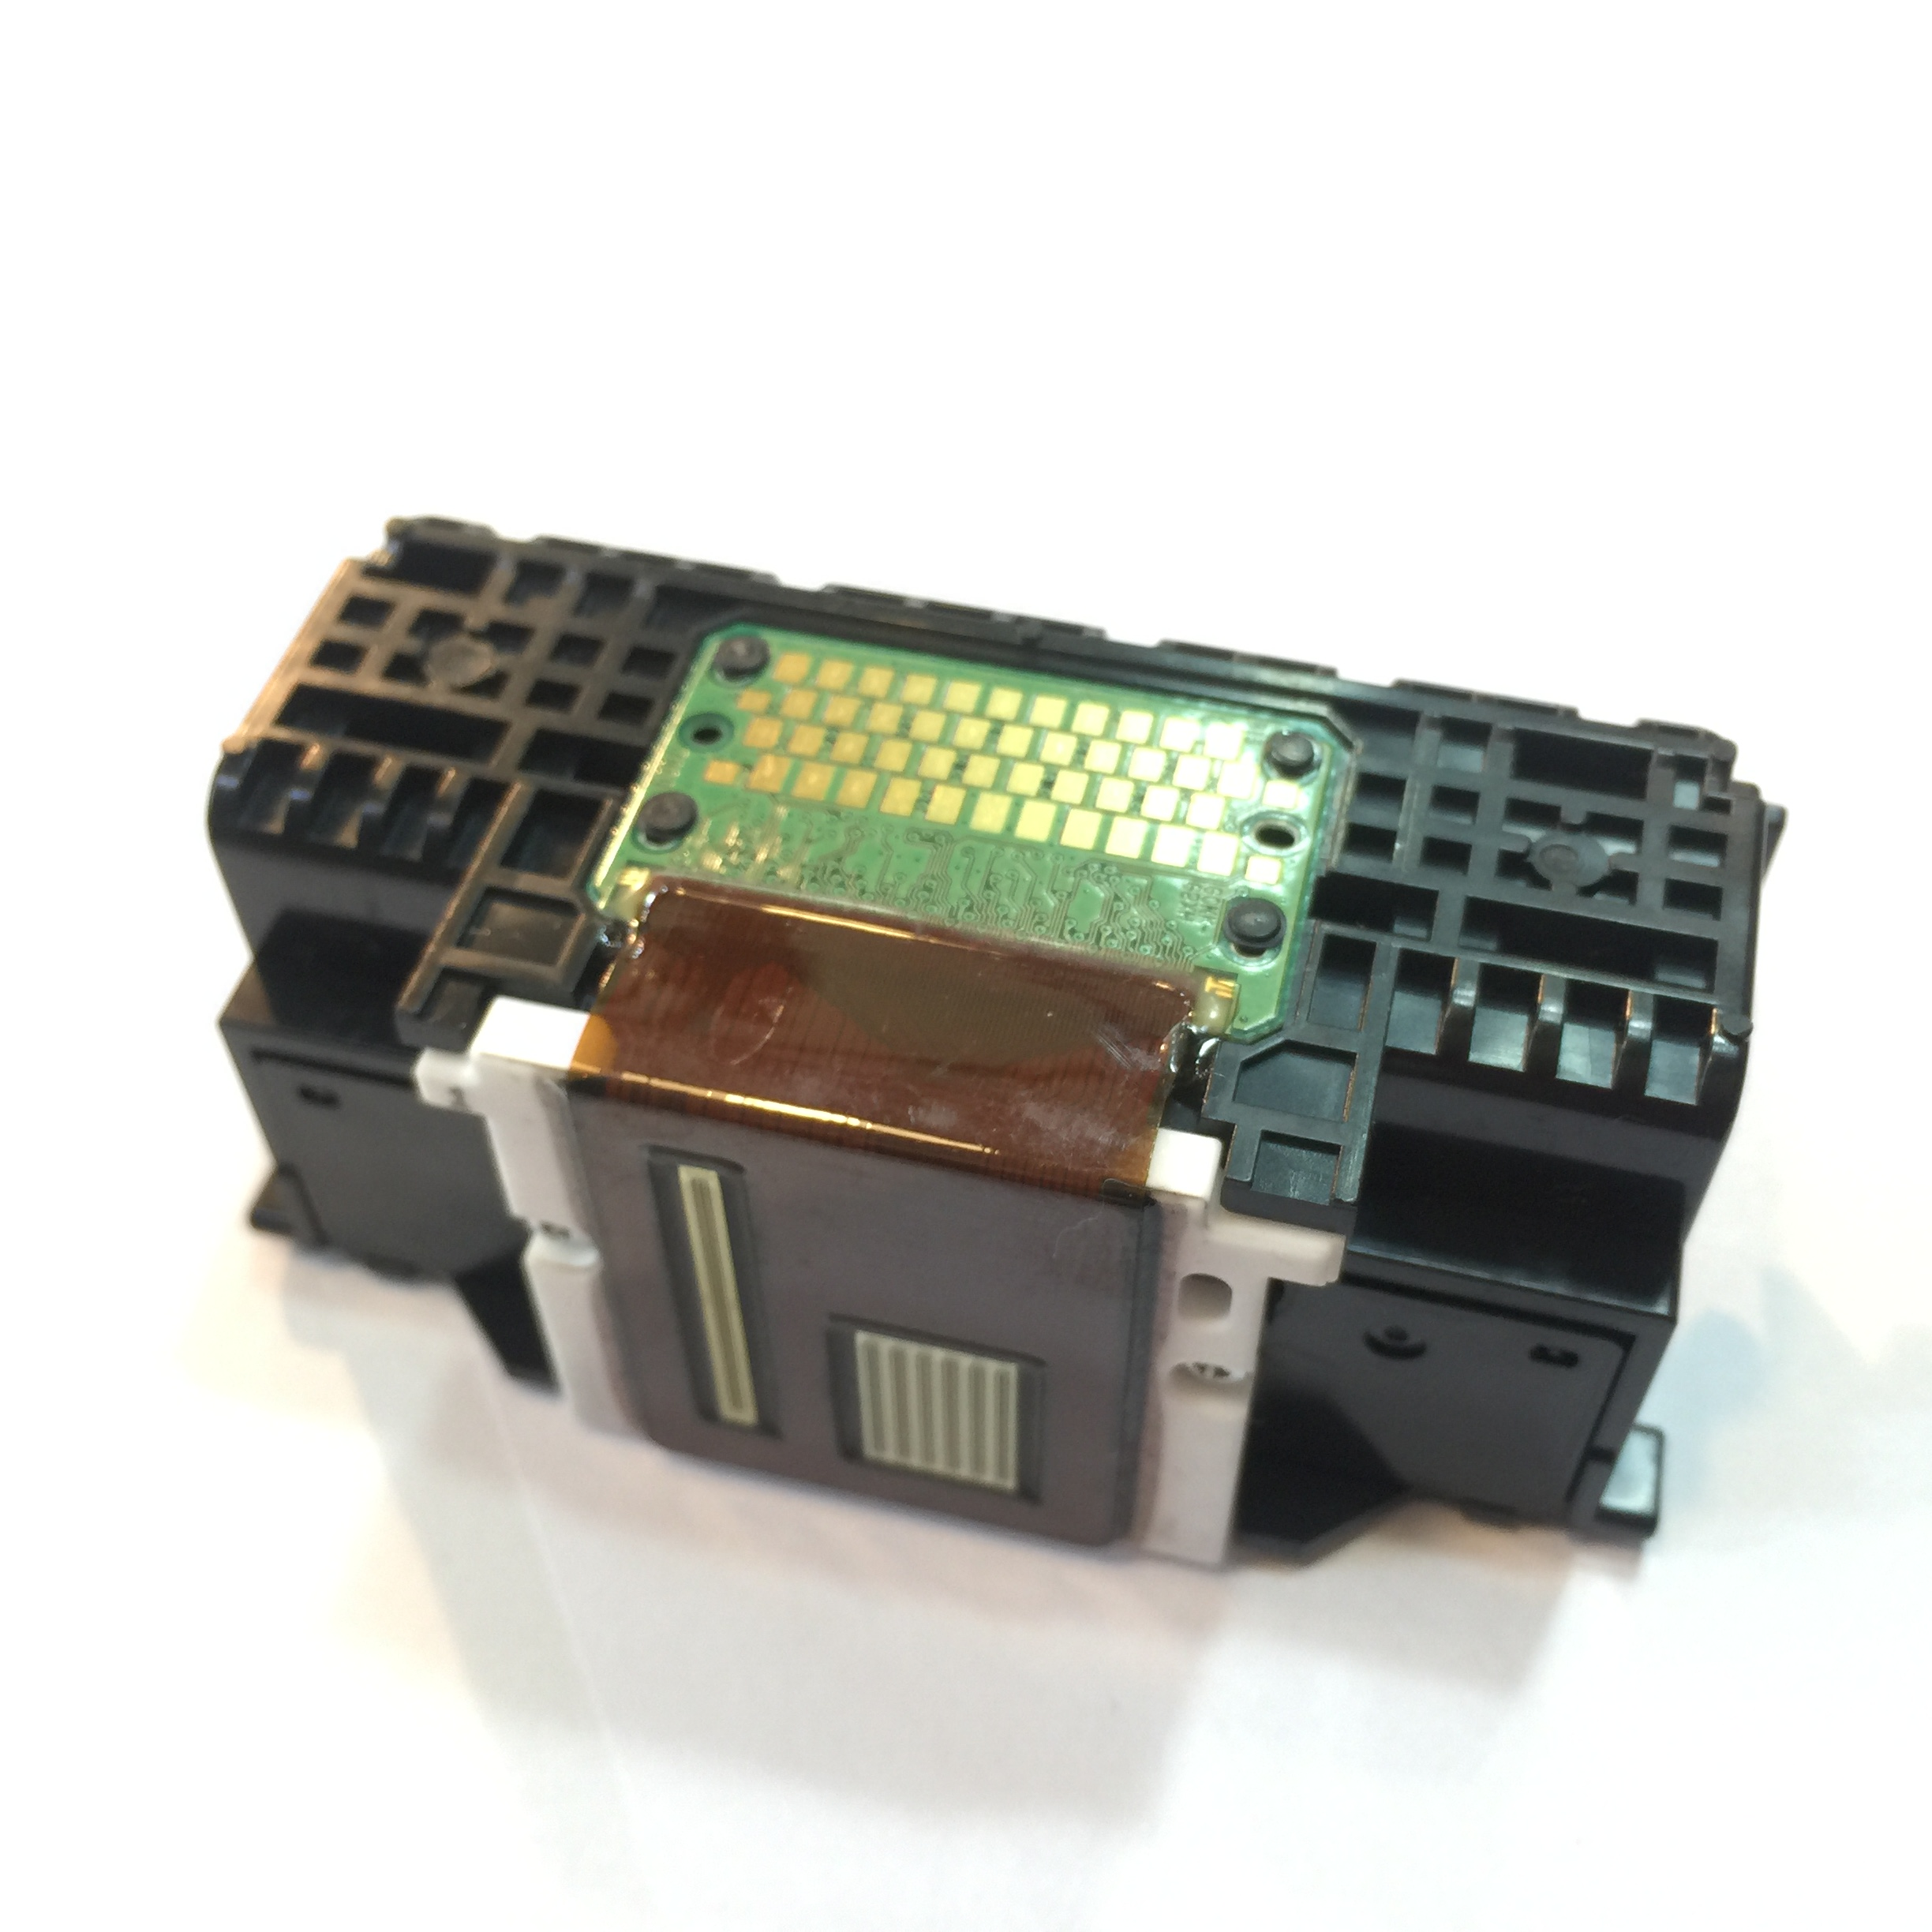 PRINT HEAD QY6-0082 PRINTHEAD FOR CANON MG5420 MG 6320 IP7270 MG6420 iP7220 SHIPPING FREE IP7240 qy6 0082 printhead print head for canon ip7200 ip7210 ip7220 ip7240 ip7250 mg5410 mg5420 mg5440 mg5450 mg5460 mg5470 mg5500